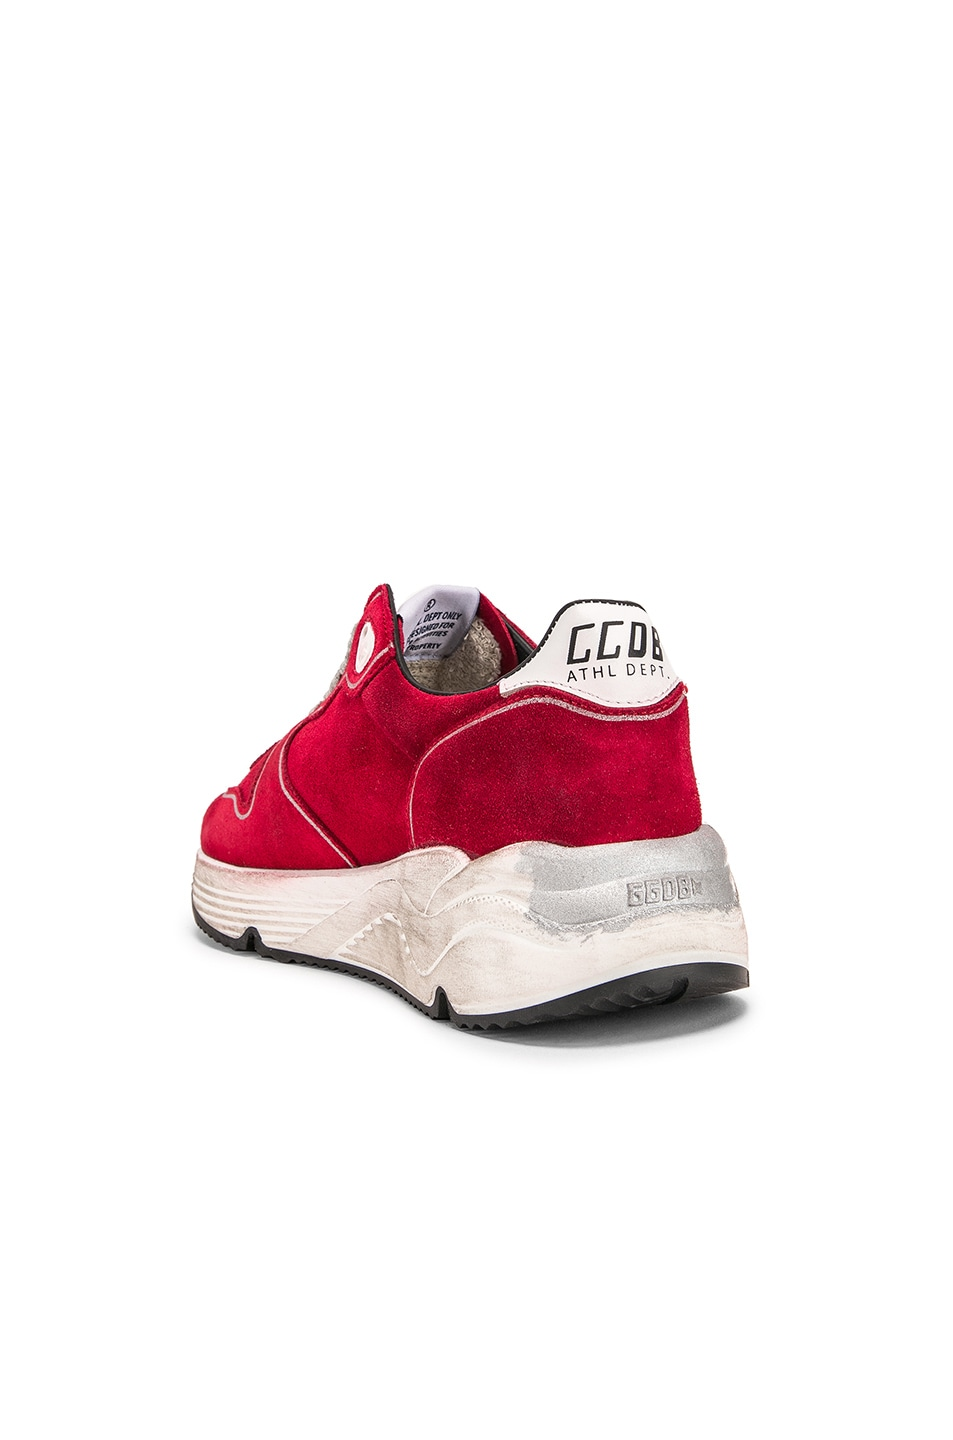 Image 3 of Golden Goose Running Sole Sneakers in Red Suede & Silver Star